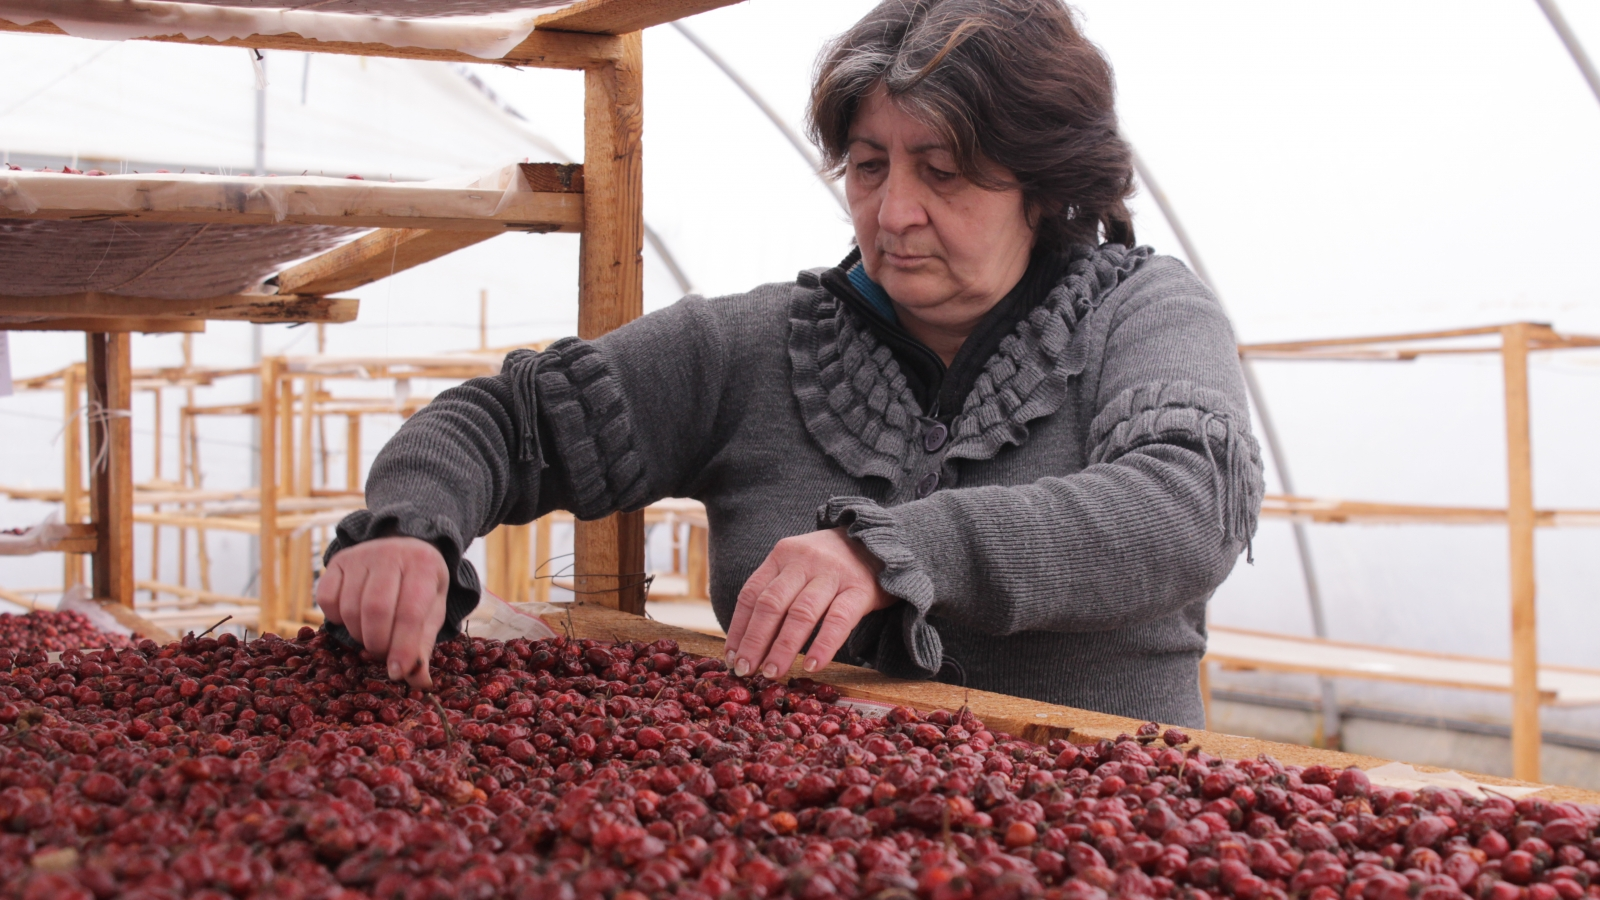 Lia Kekelishvili, one of the founder of agricultural cooperative